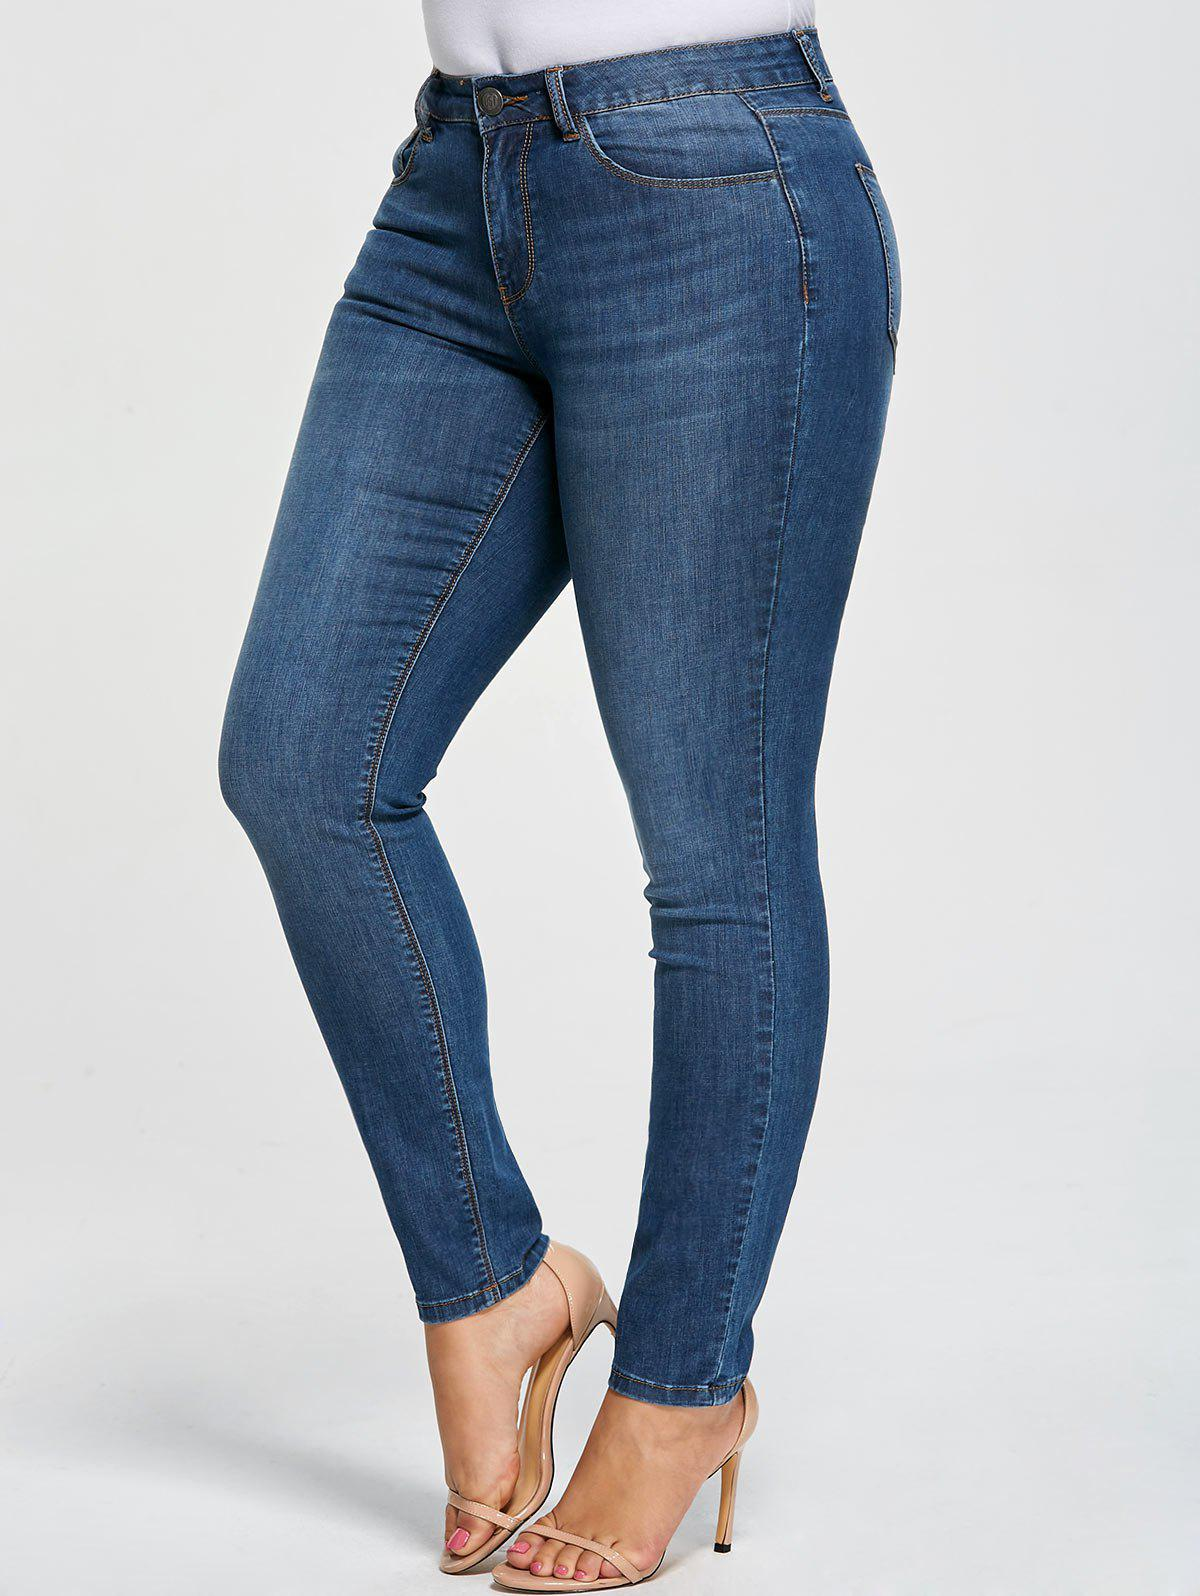 Chic Plus Size Five Pockets Denim Pencil Jeans